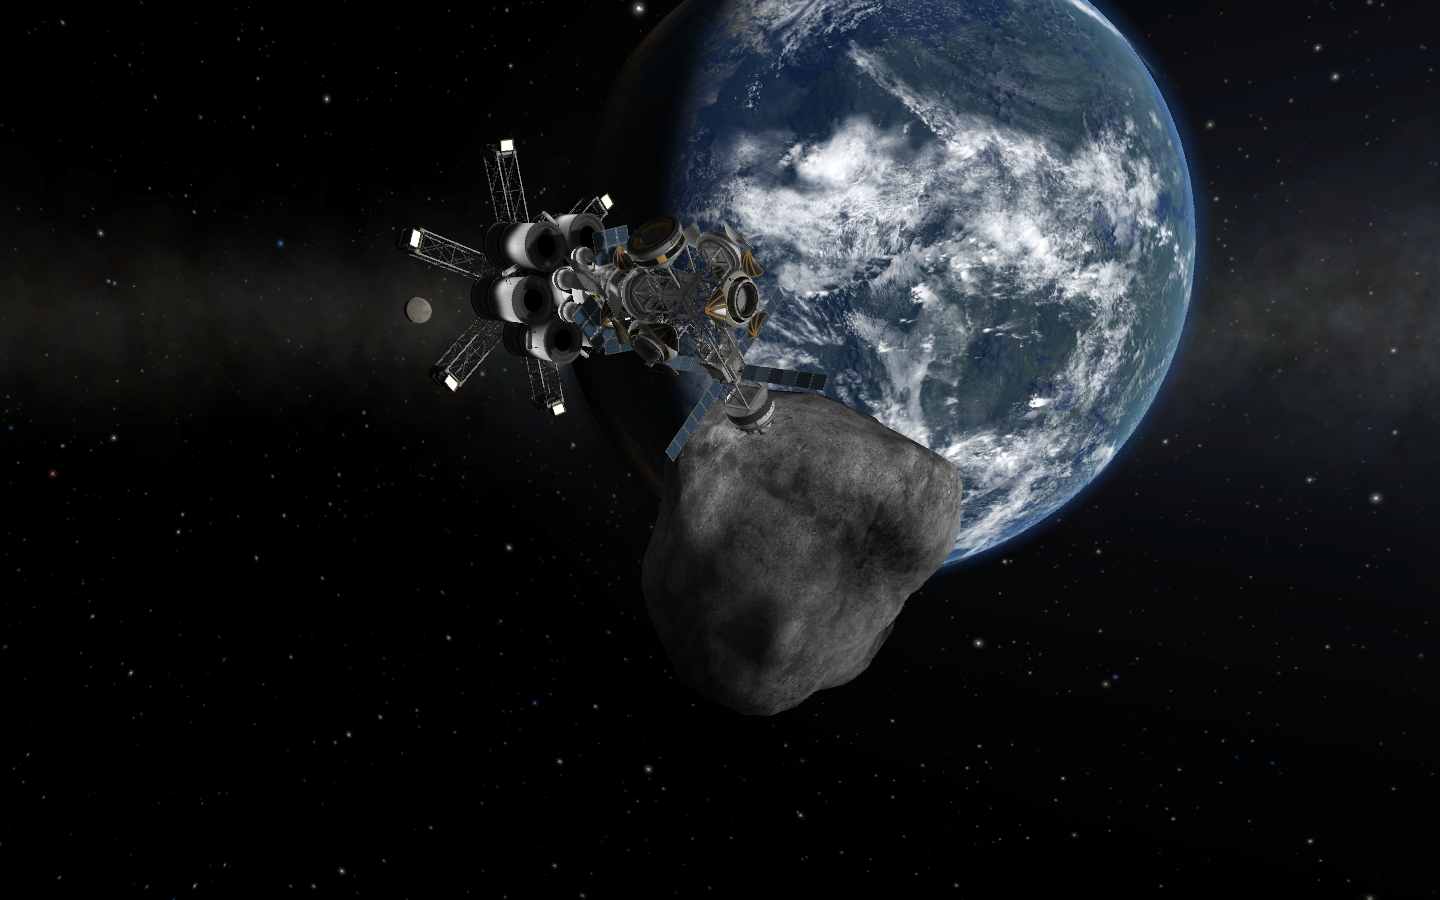 Kerbal Space Program Mod | The blog of PCB1981